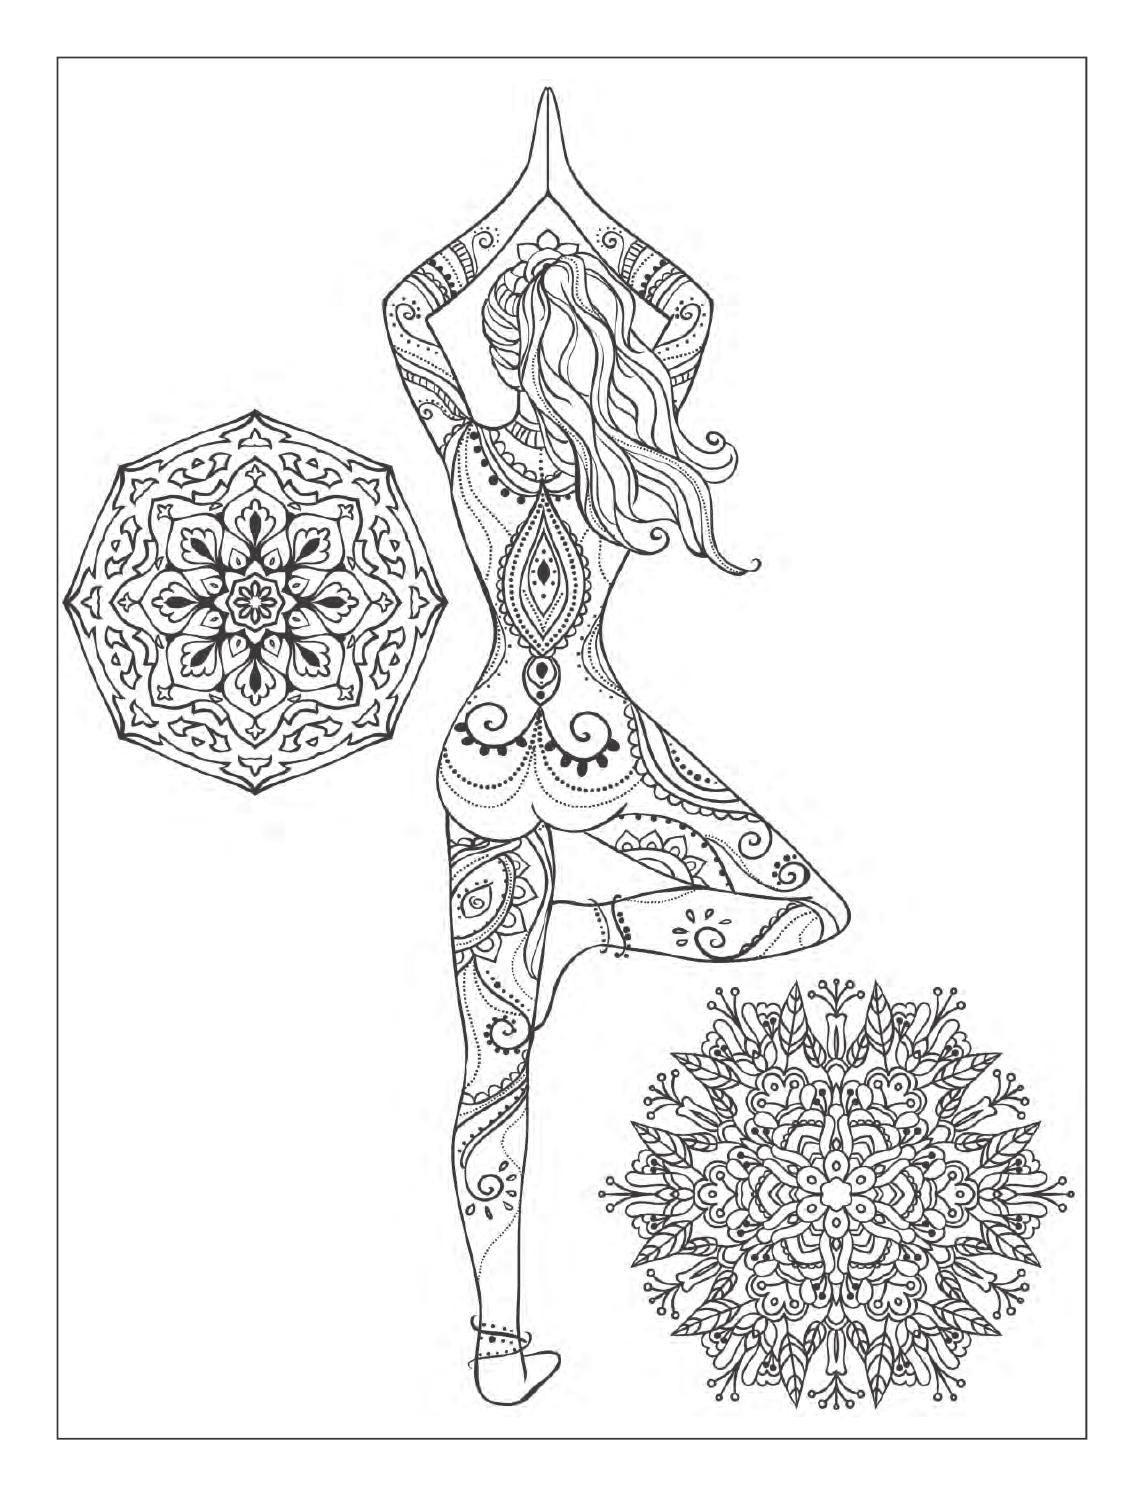 mandala meditation coloring pages virtues meditation mandalas coloring book a spiritual meditation mandala pages coloring